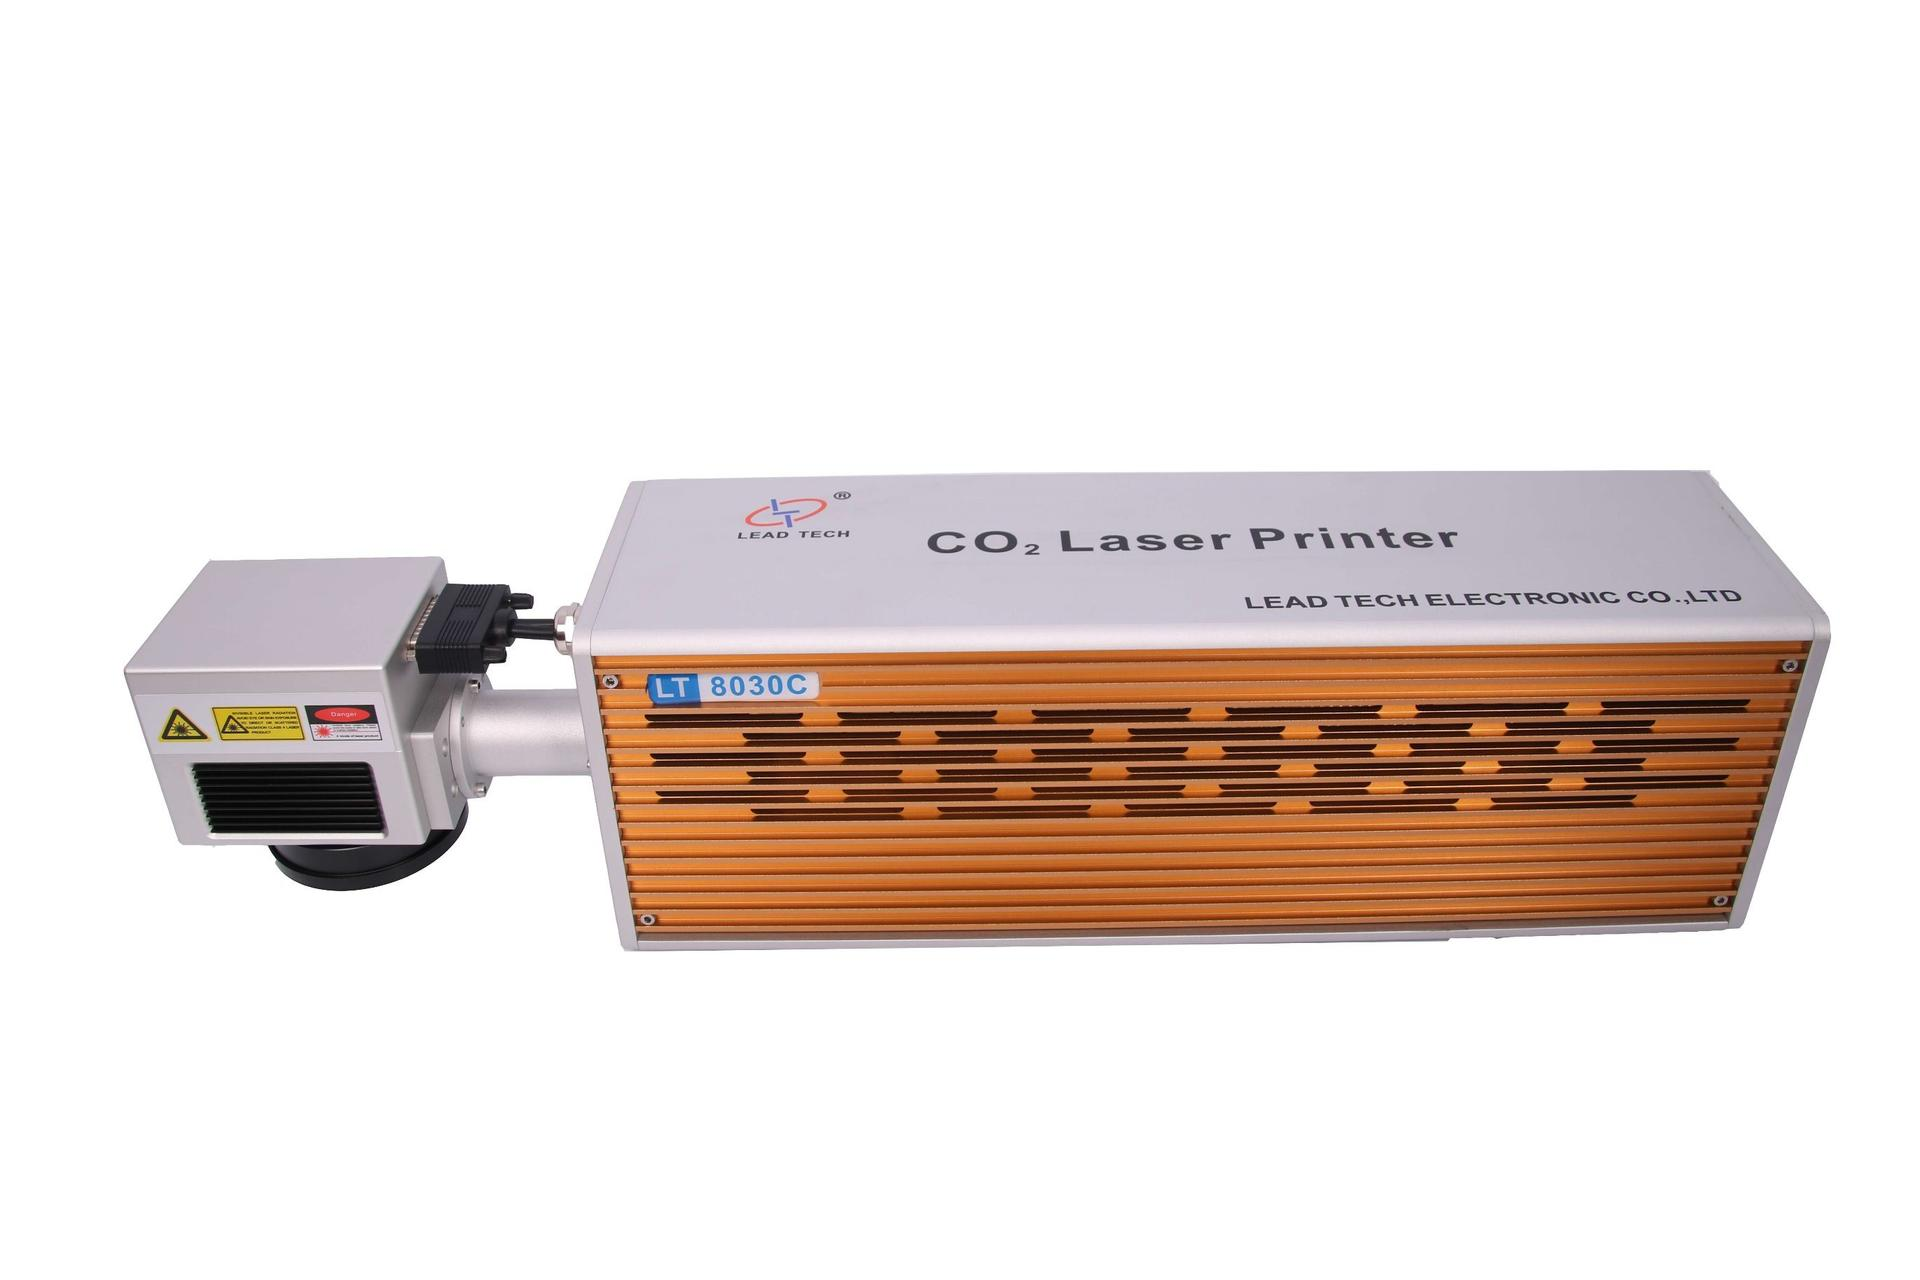 Lt8020c/Lt8030c CO2 20W/30W High Performance Digital Laser Marking Printer for PPR/PE/PVC Pipe Marking